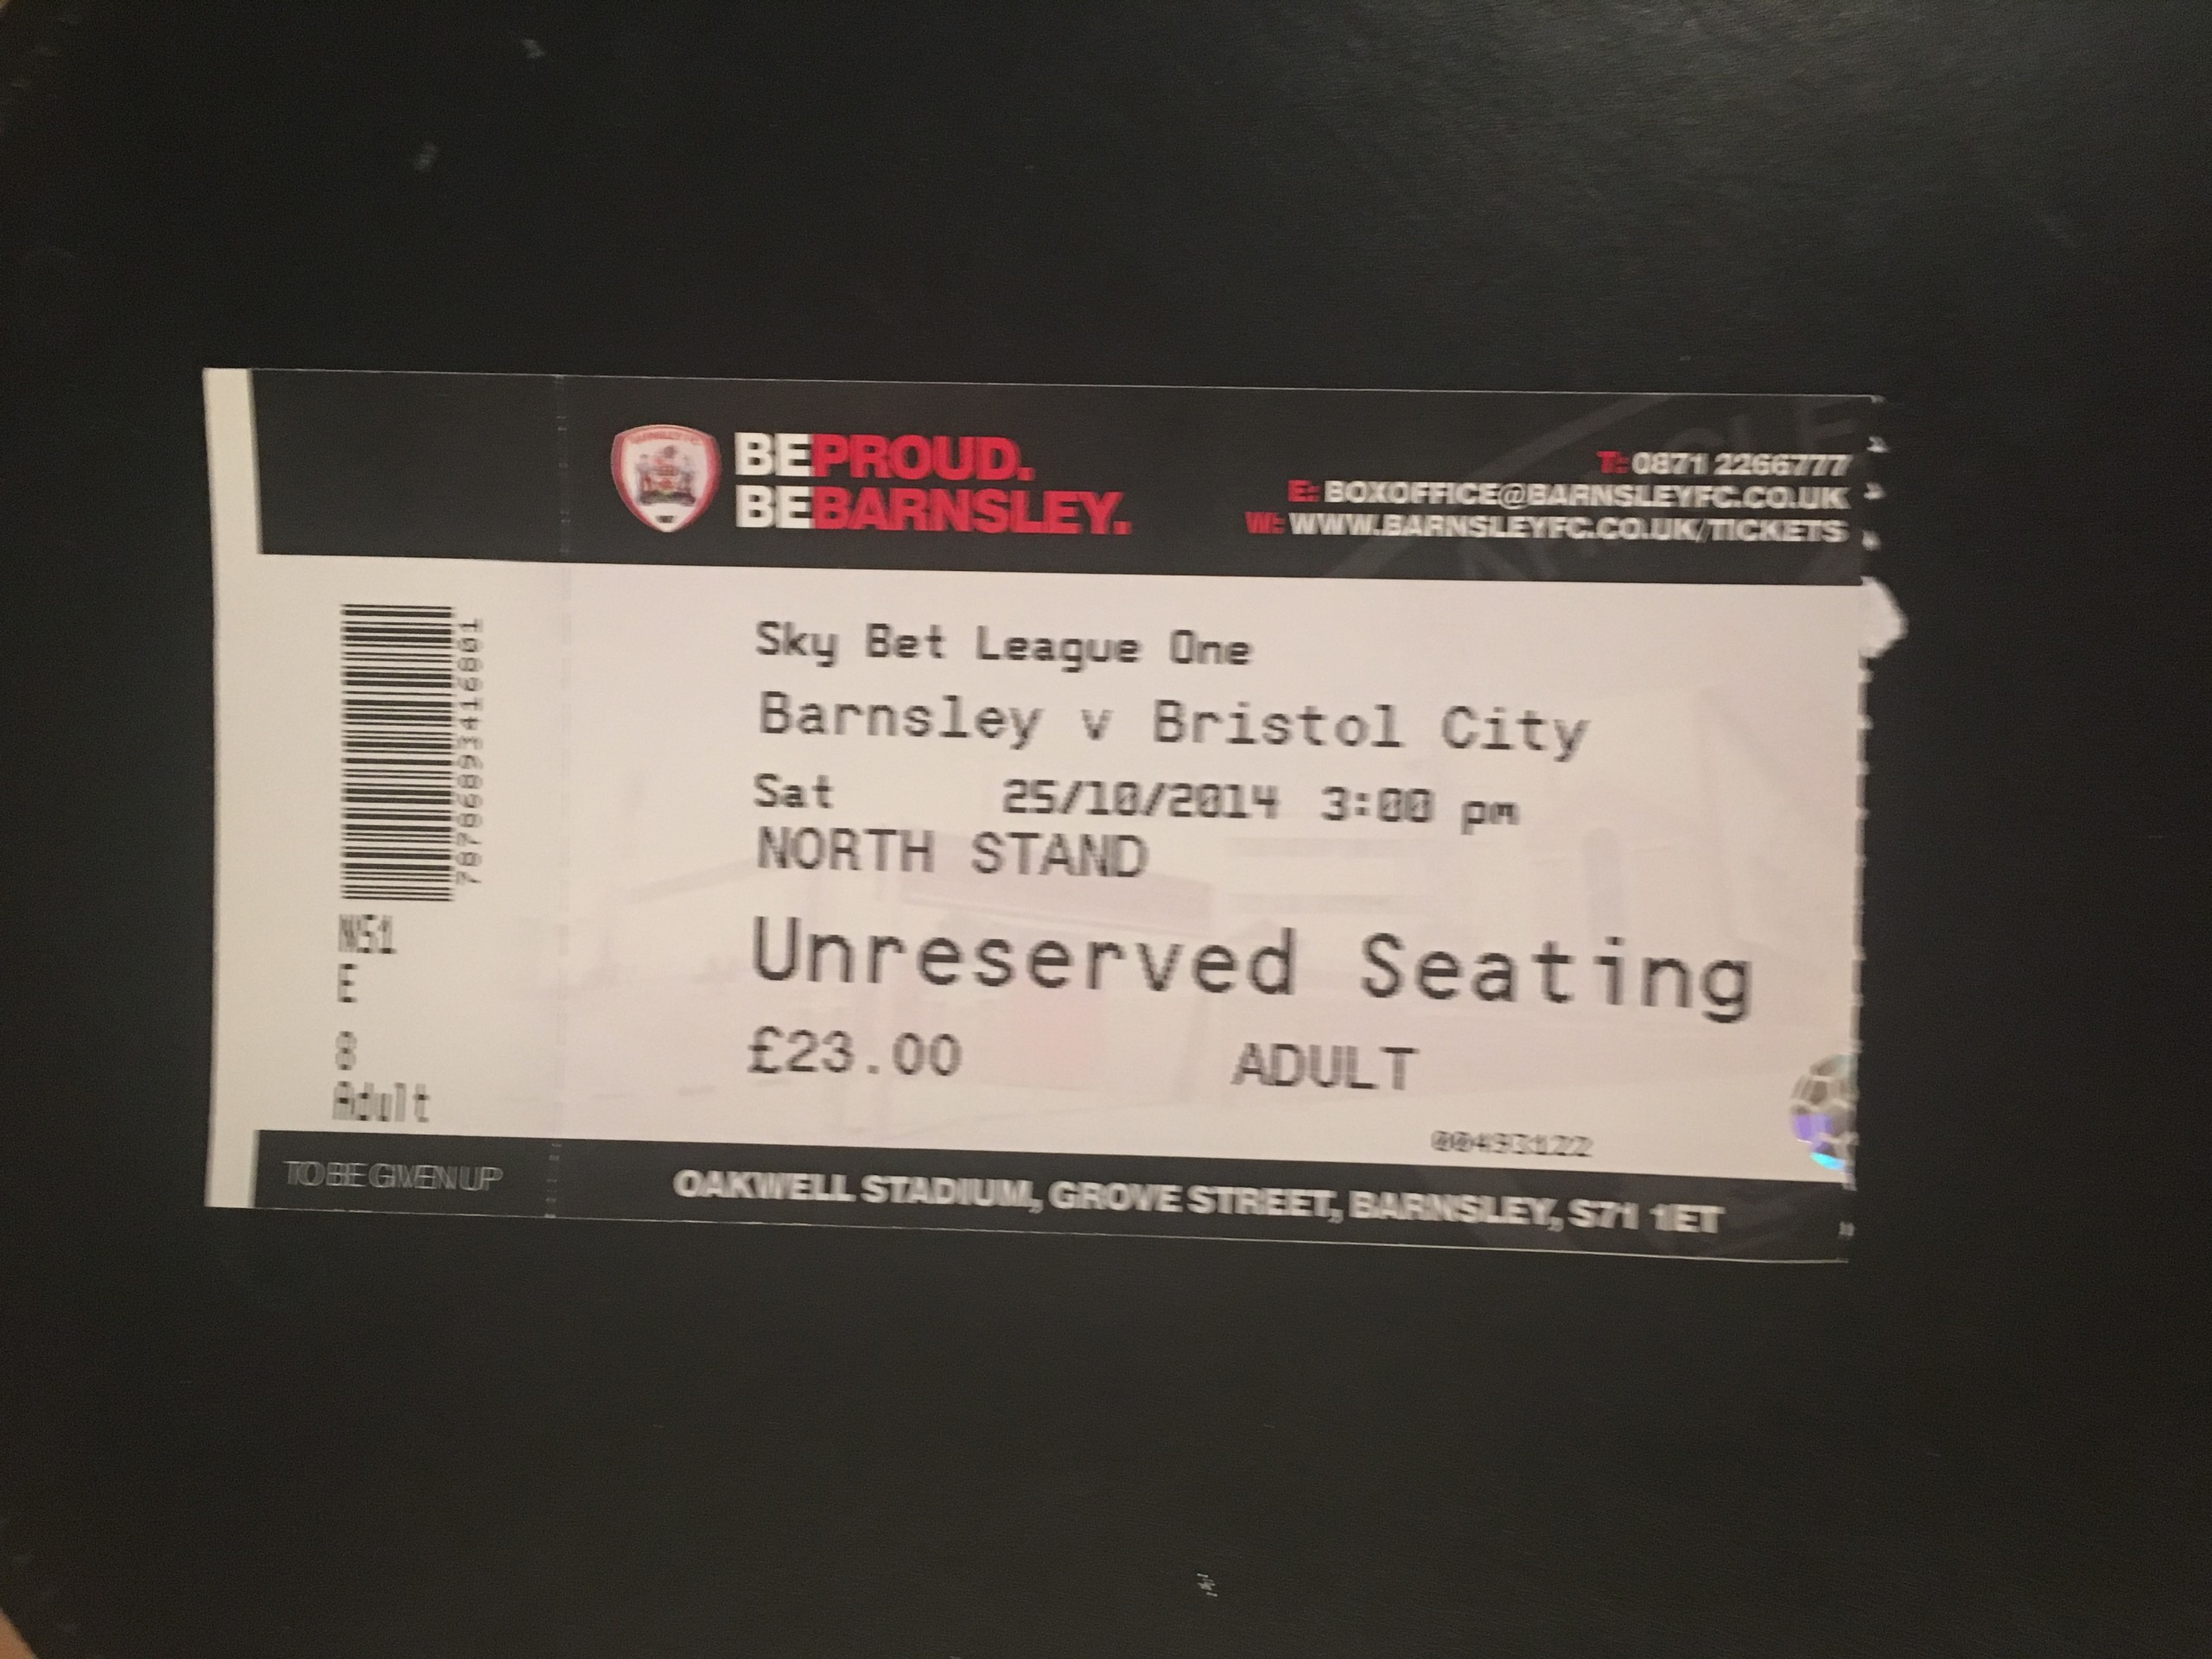 Barnsley v Bristol City 25-10-2014 Ticket